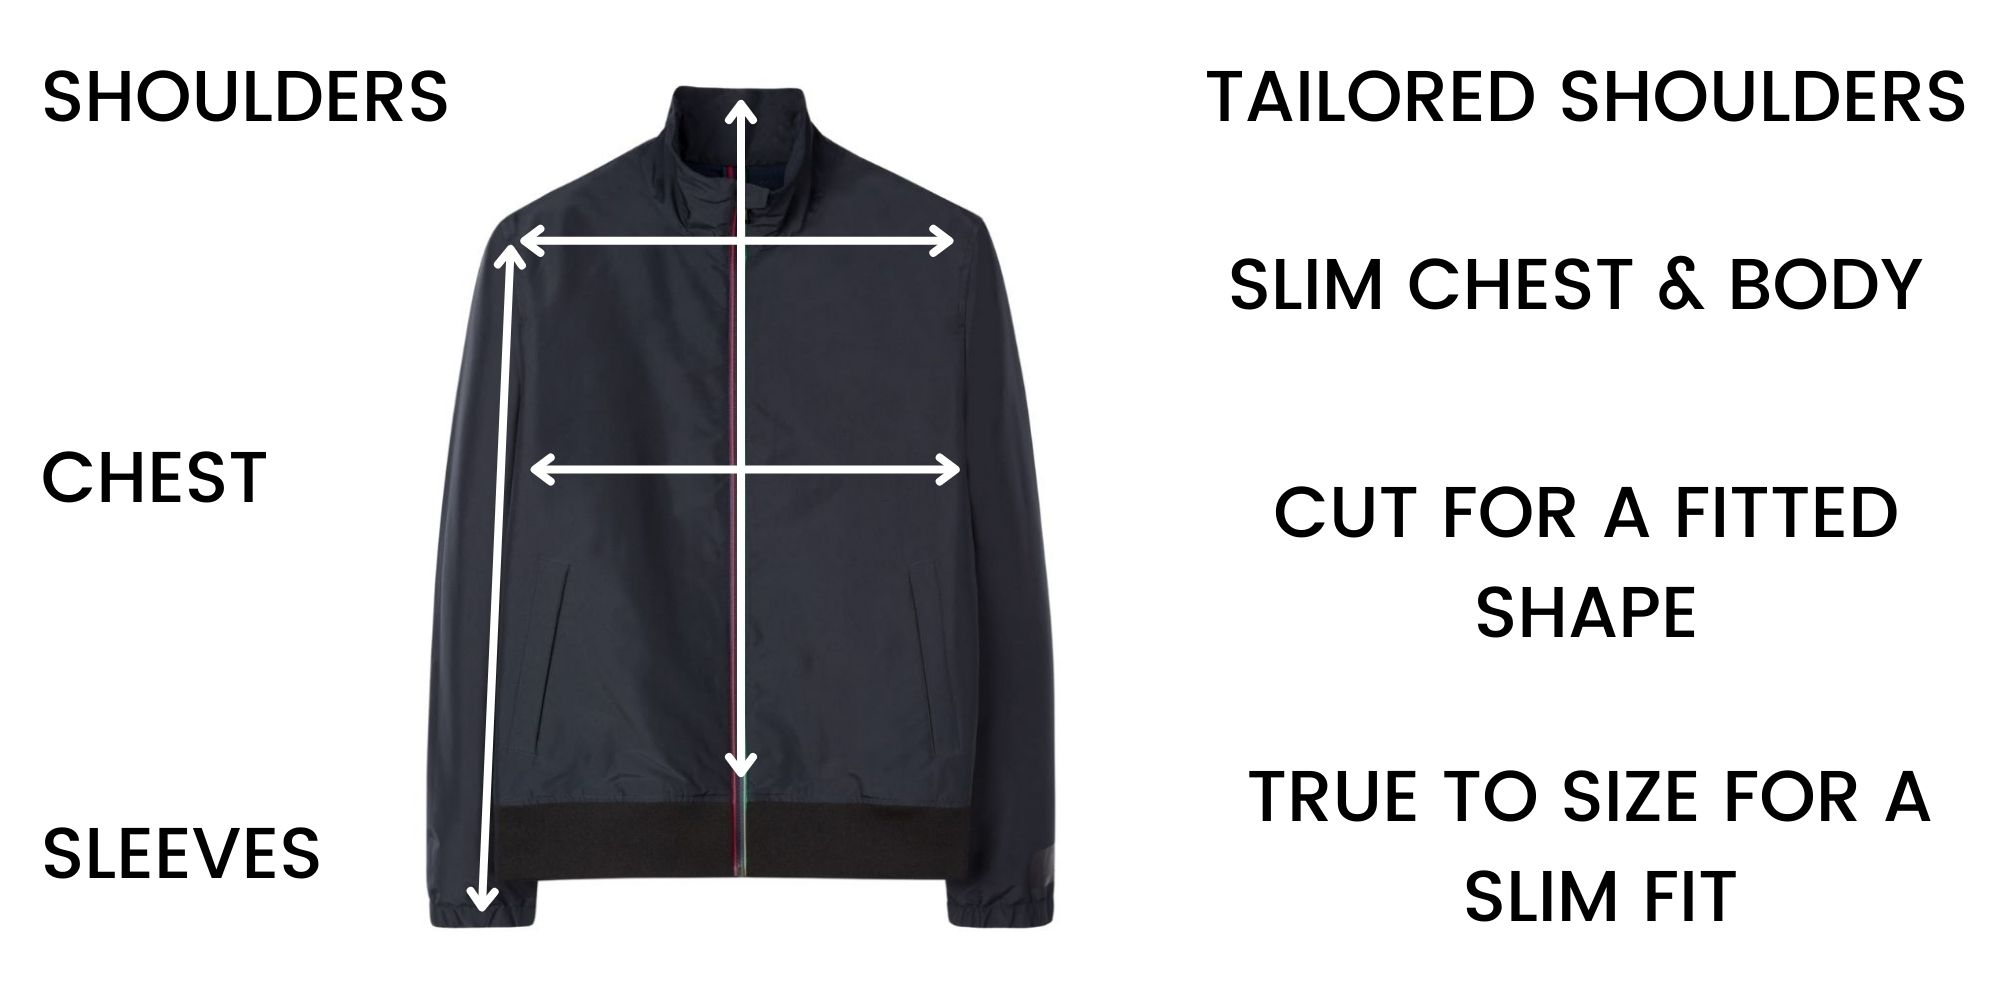 Paul Smith Casual Jackets Size Guide